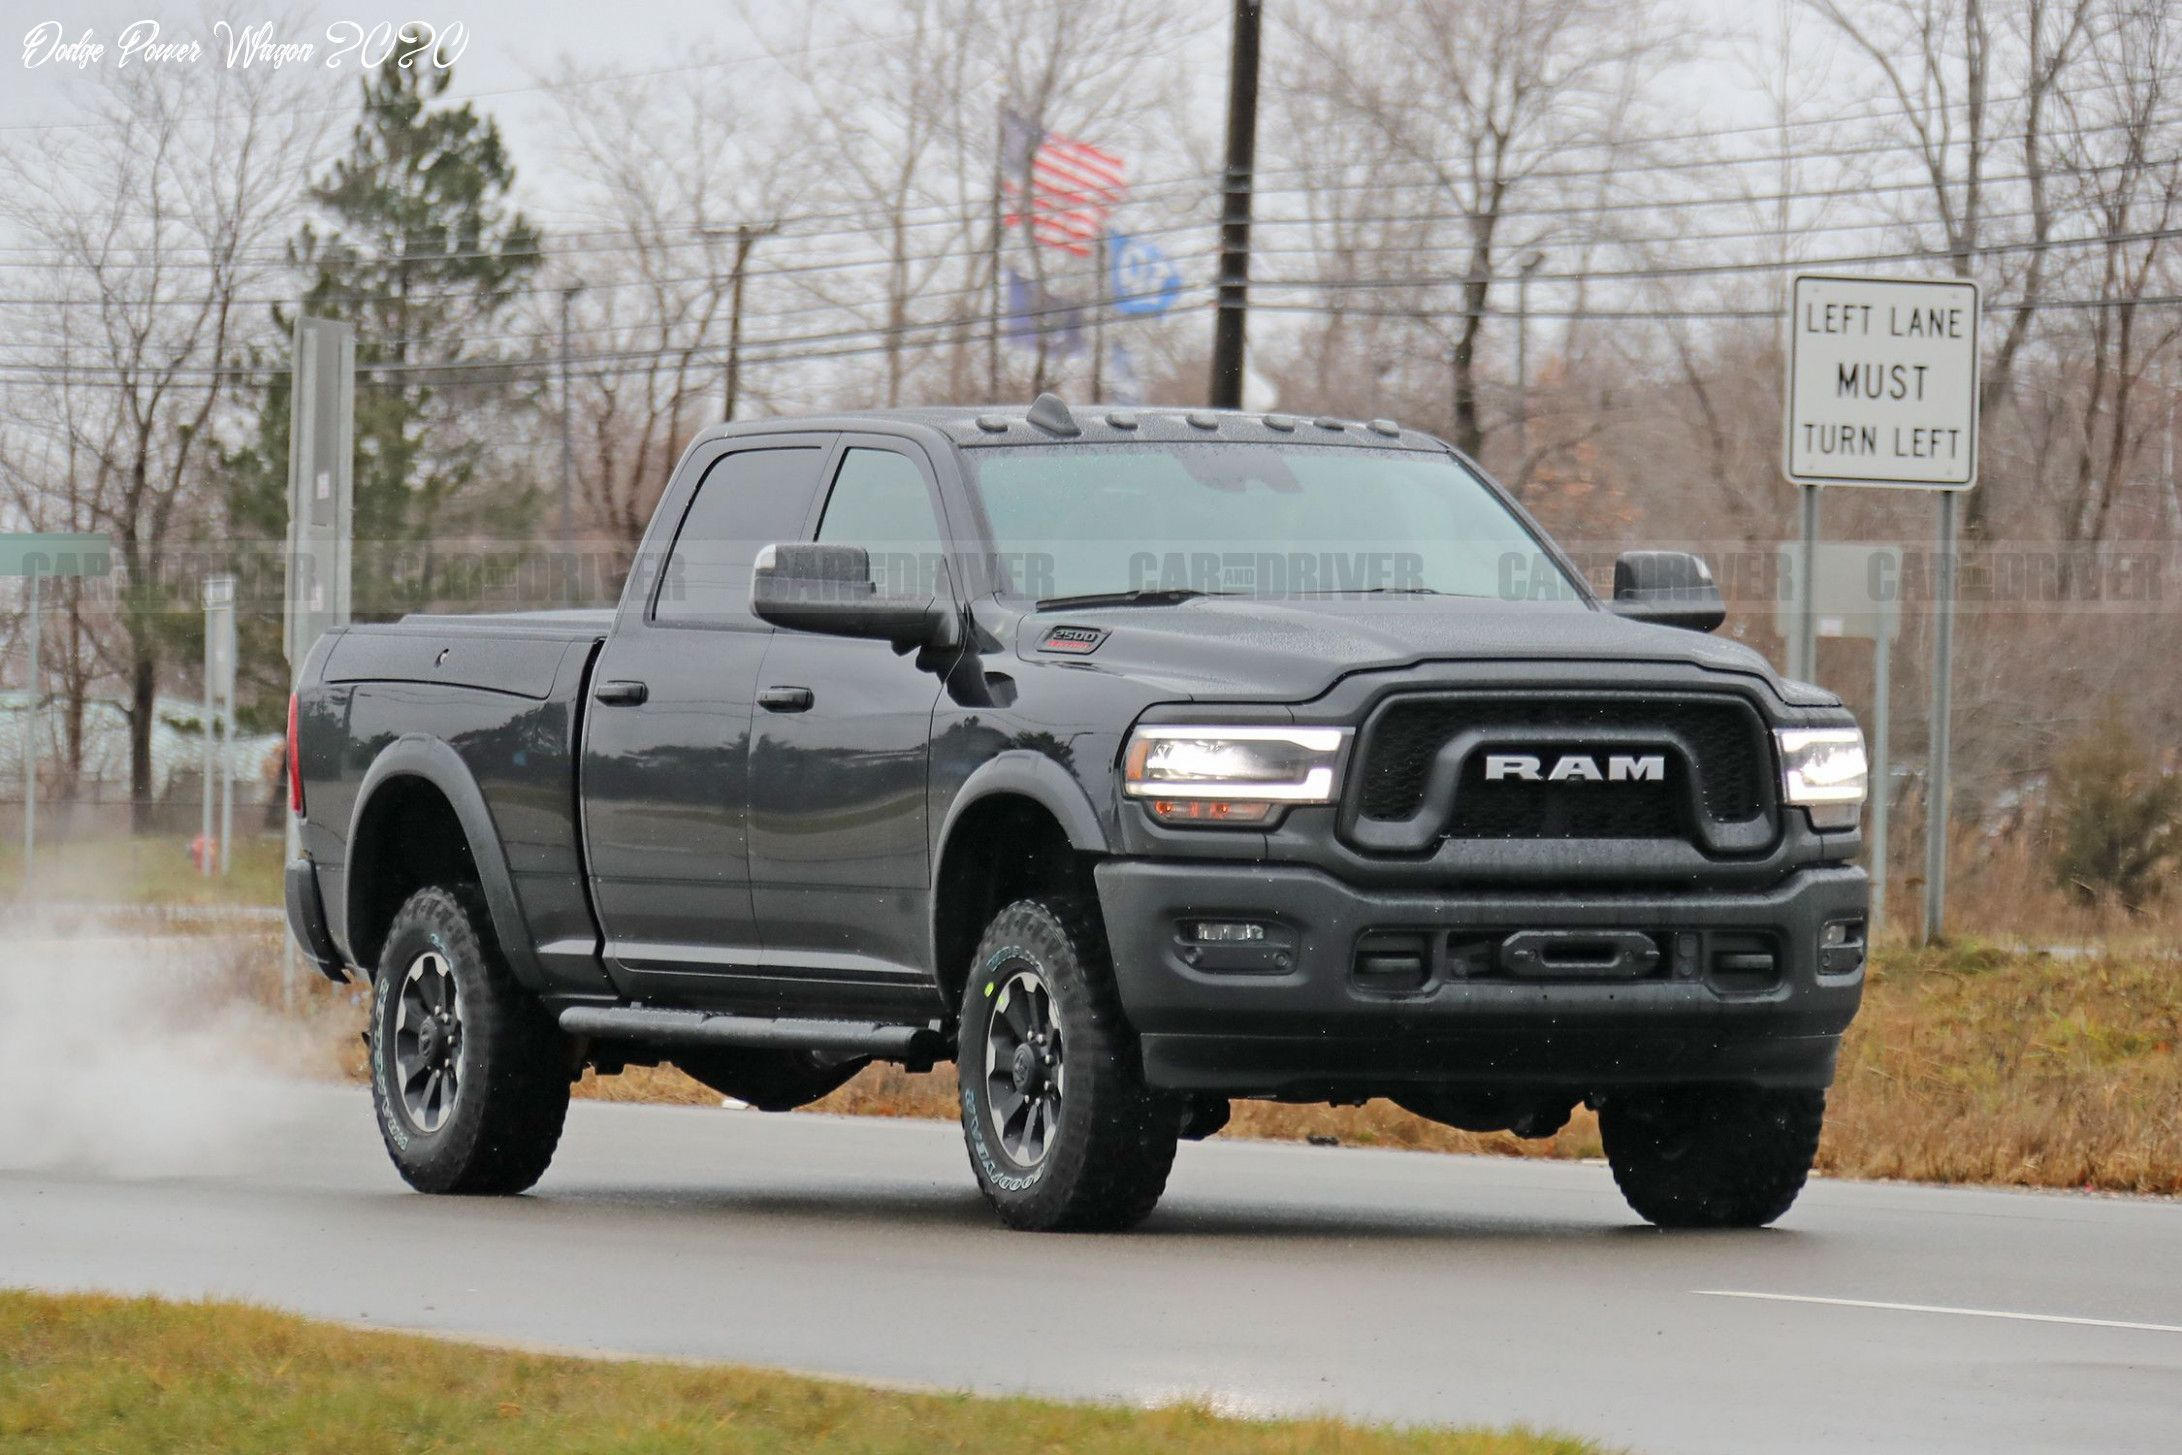 Dodge Power Wagon 2020 Exterior And Interior In 2020 Ram Power Wagon Dodge Power Wagon Power Wagon